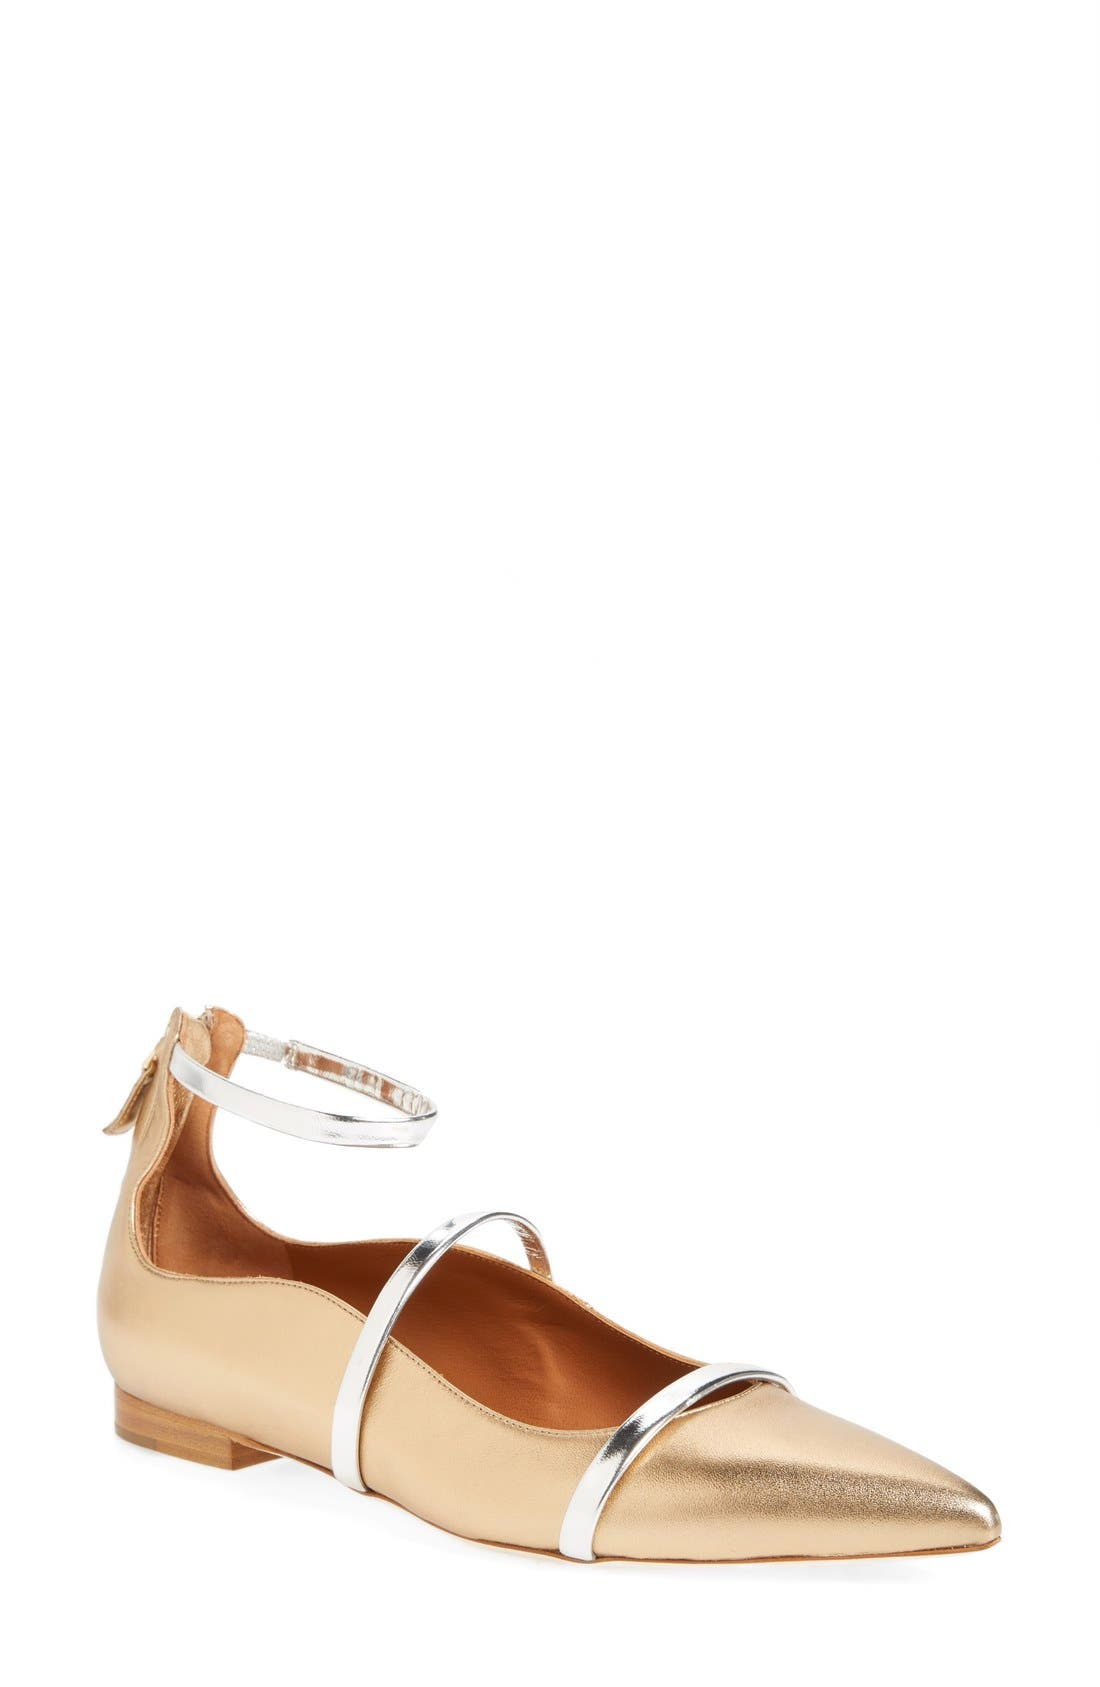 'Robyn' Ankle Strap Flat,                             Main thumbnail 1, color,                             710